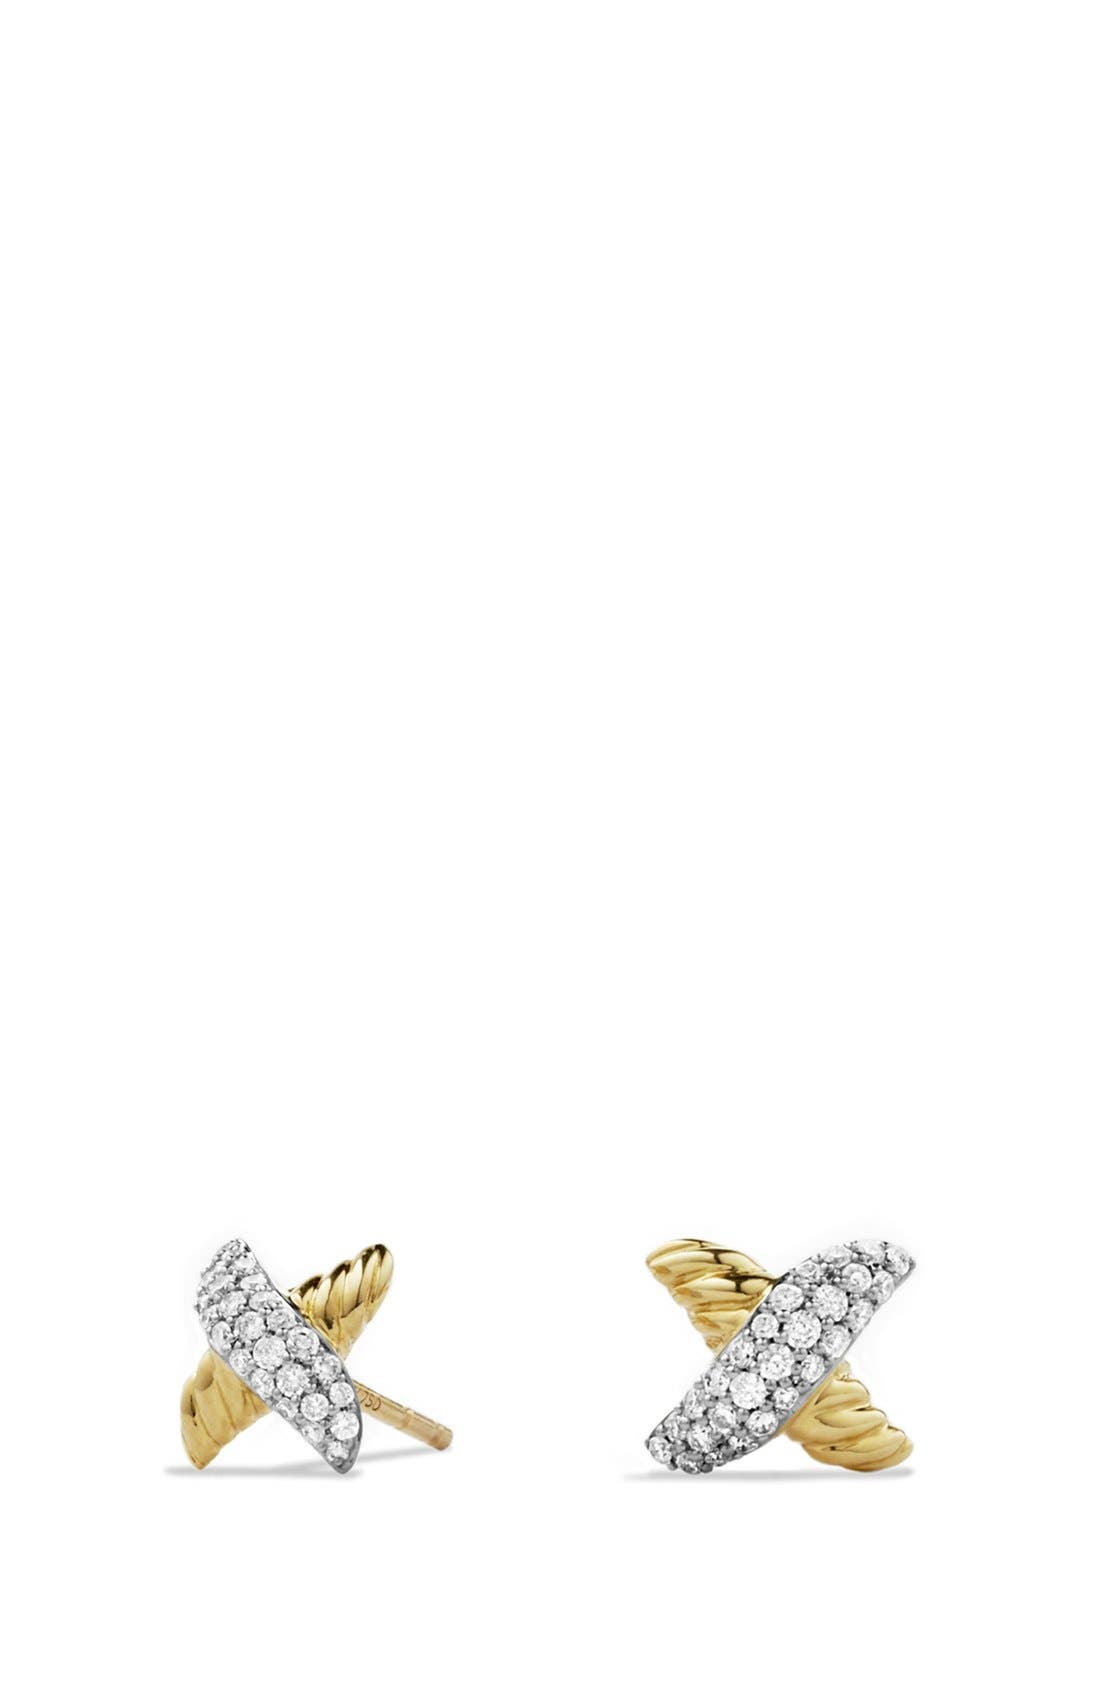 'X' Petite Earrings with Diamonds and Gold,                             Main thumbnail 1, color,                             Diamond